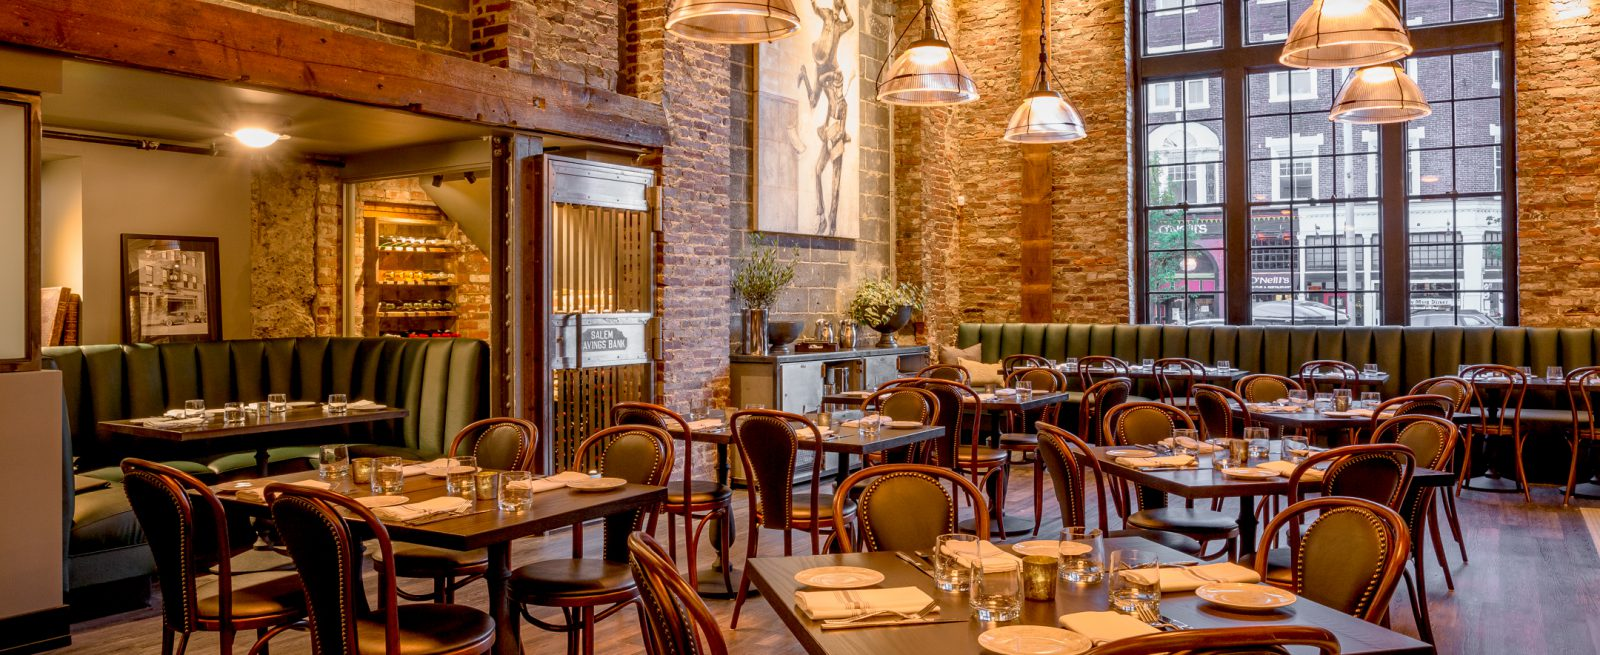 Case Study The Floor Really Pulls The Room Together Modern Restaurant Management The Business Of Eating Restaurant Management News